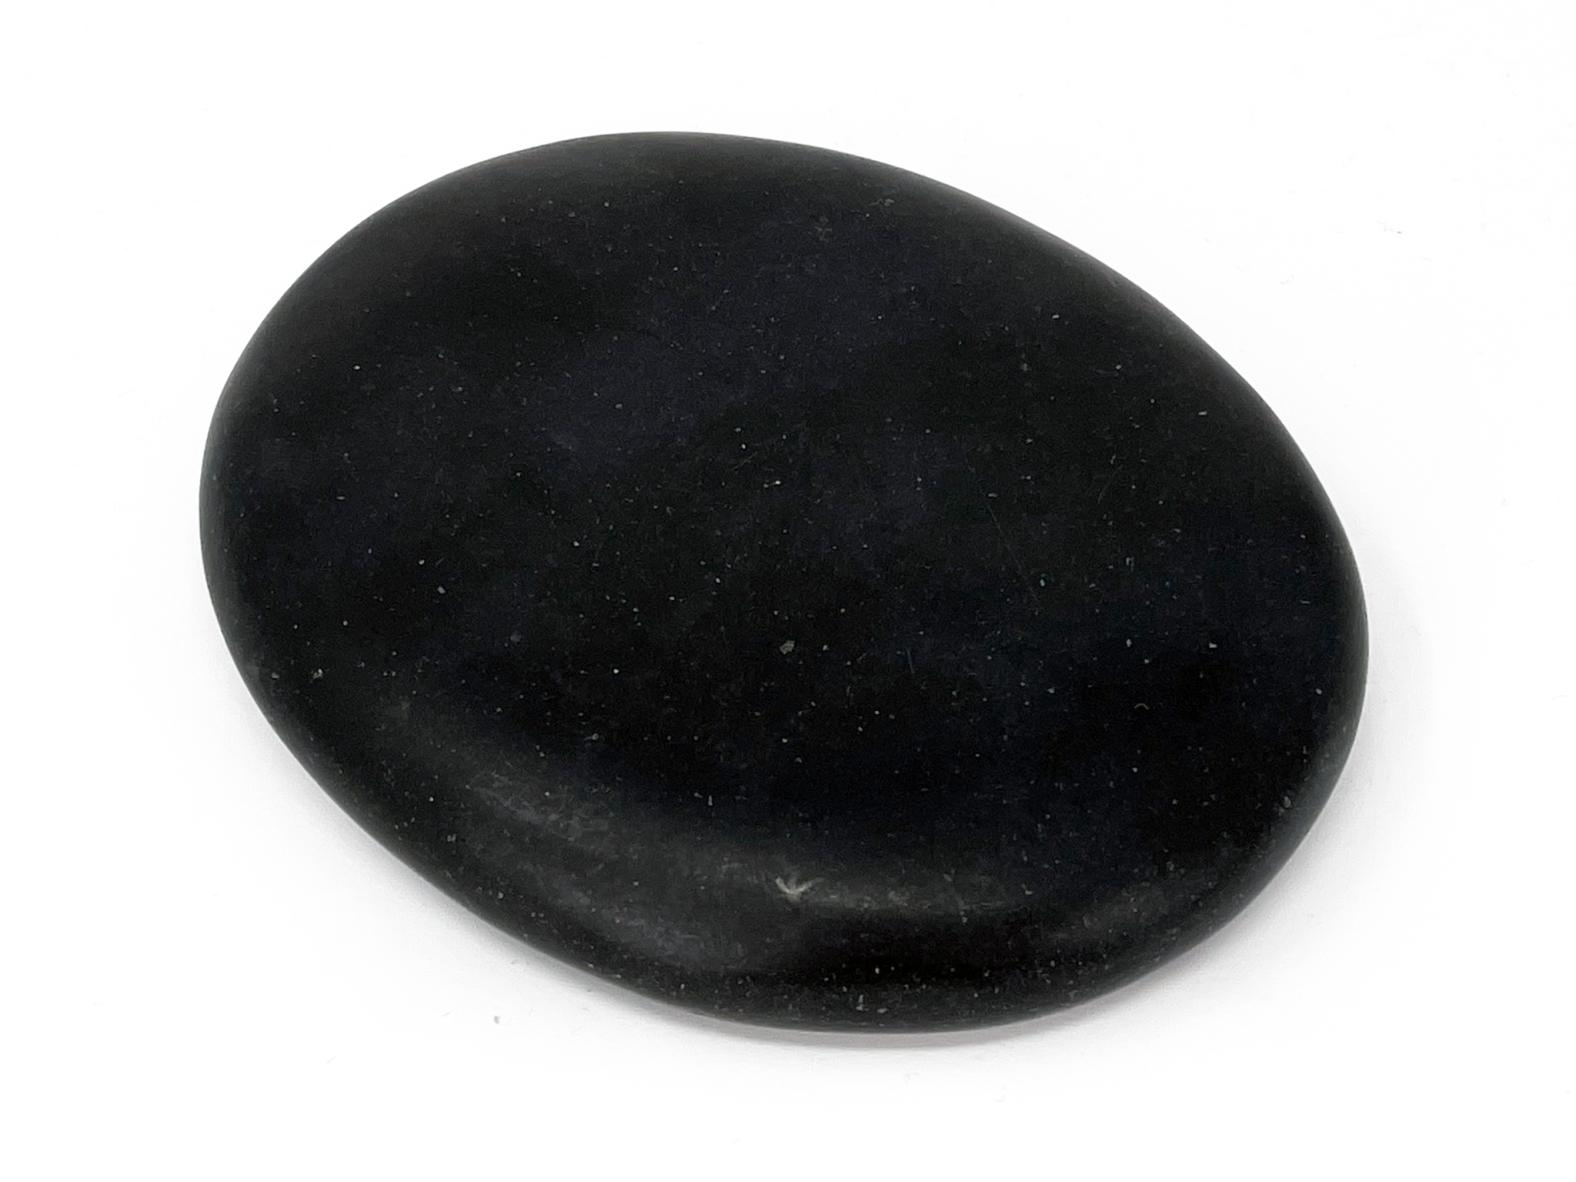 Basalt-Stein - 90-110 mm (Hot Stone / Massagestein)